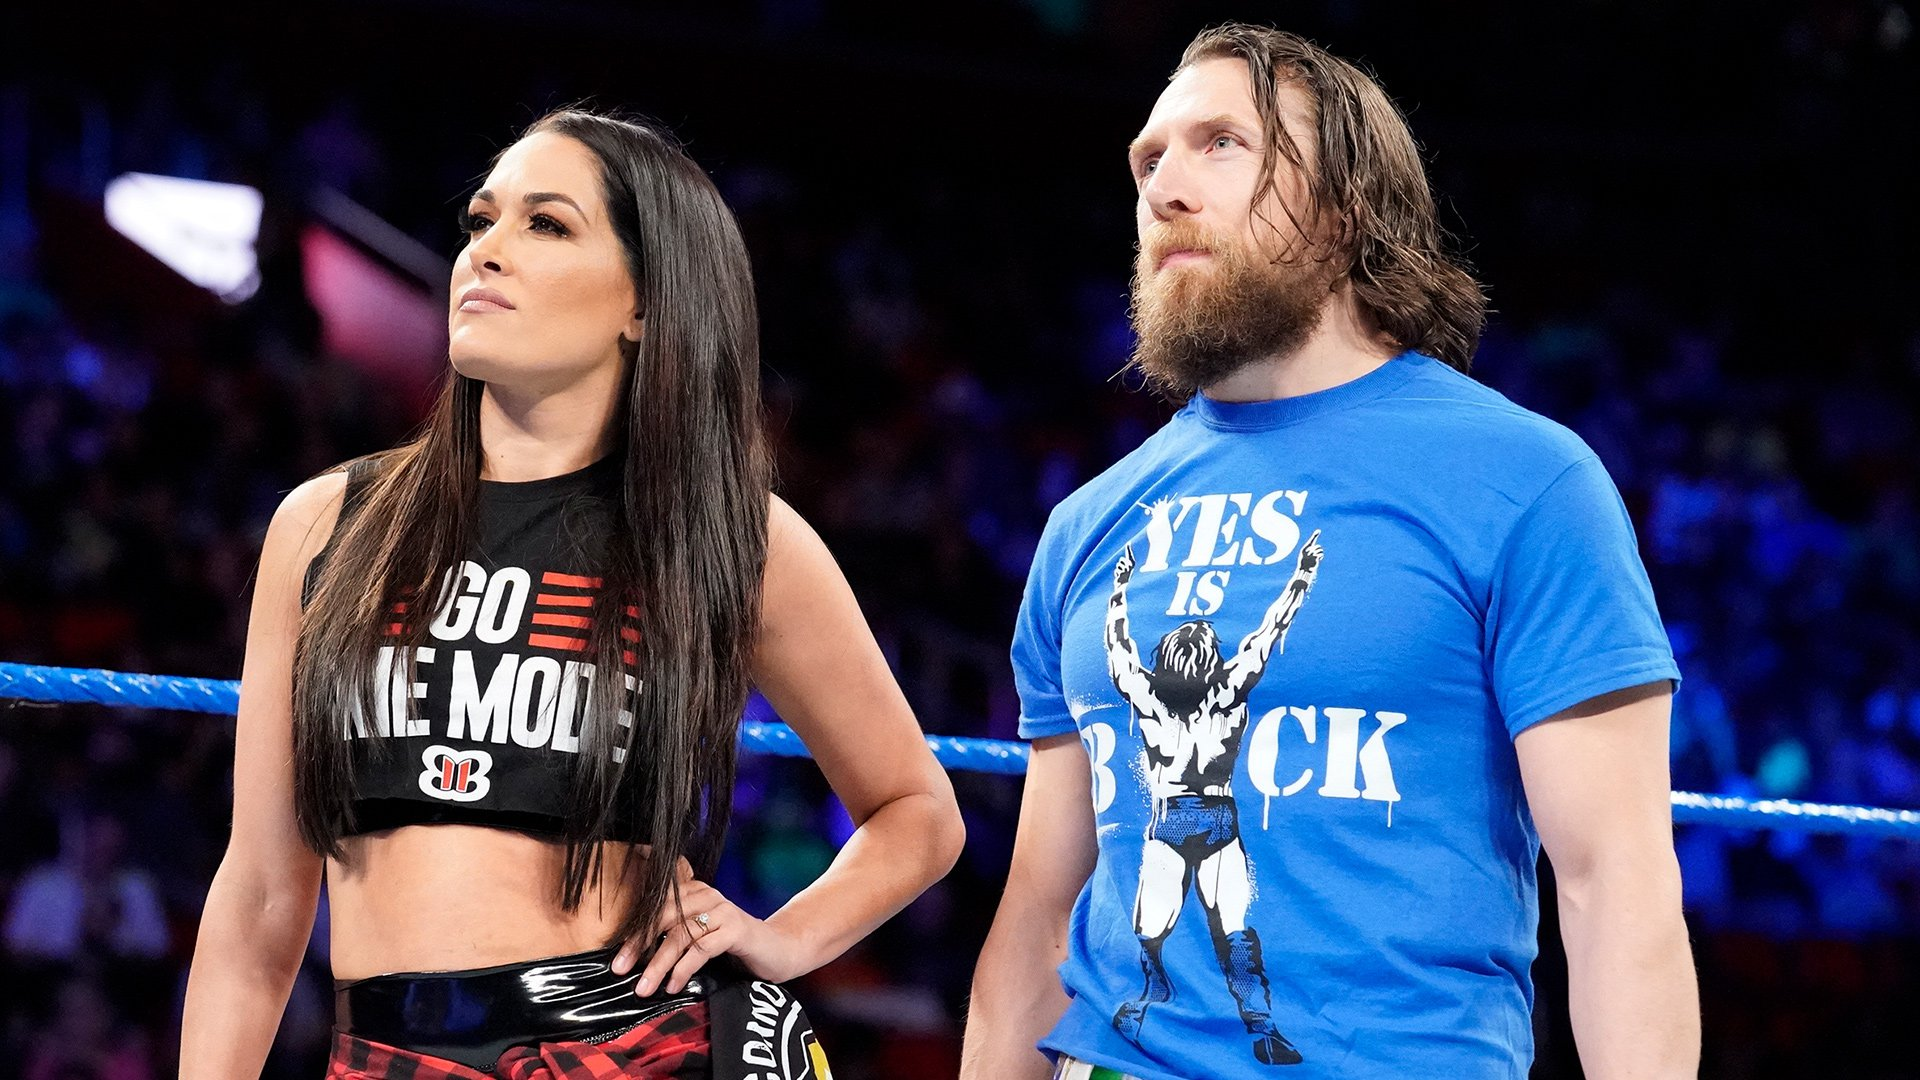 Brie Bella and Daniel Bryan on the ring together